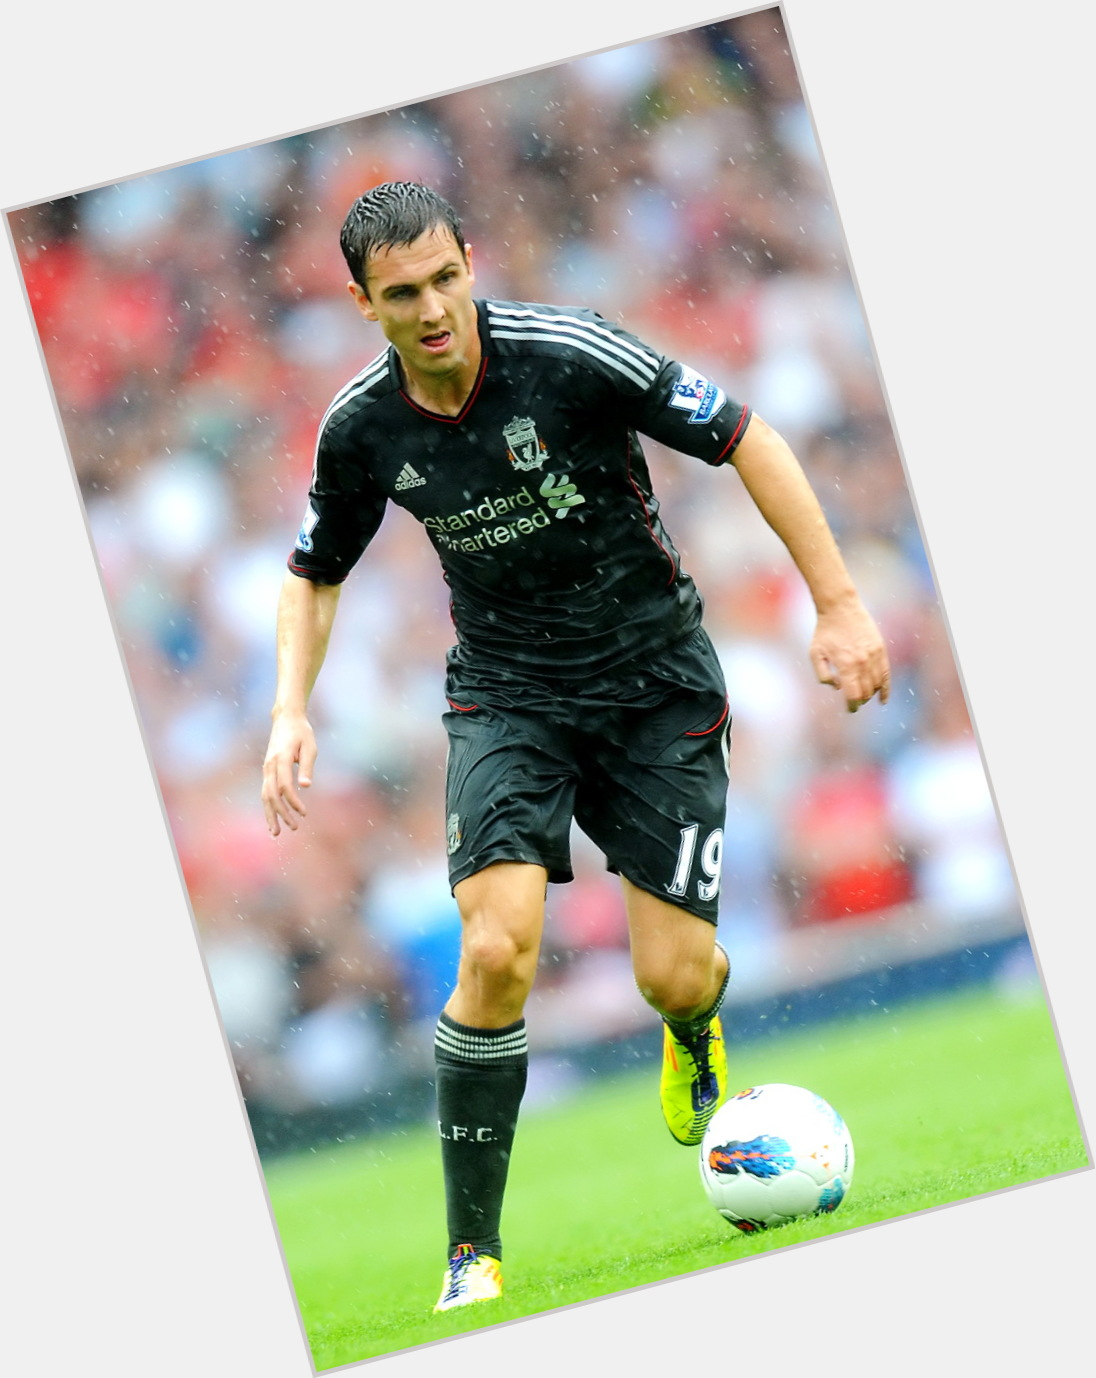 Stewart Downing young 8.jpg